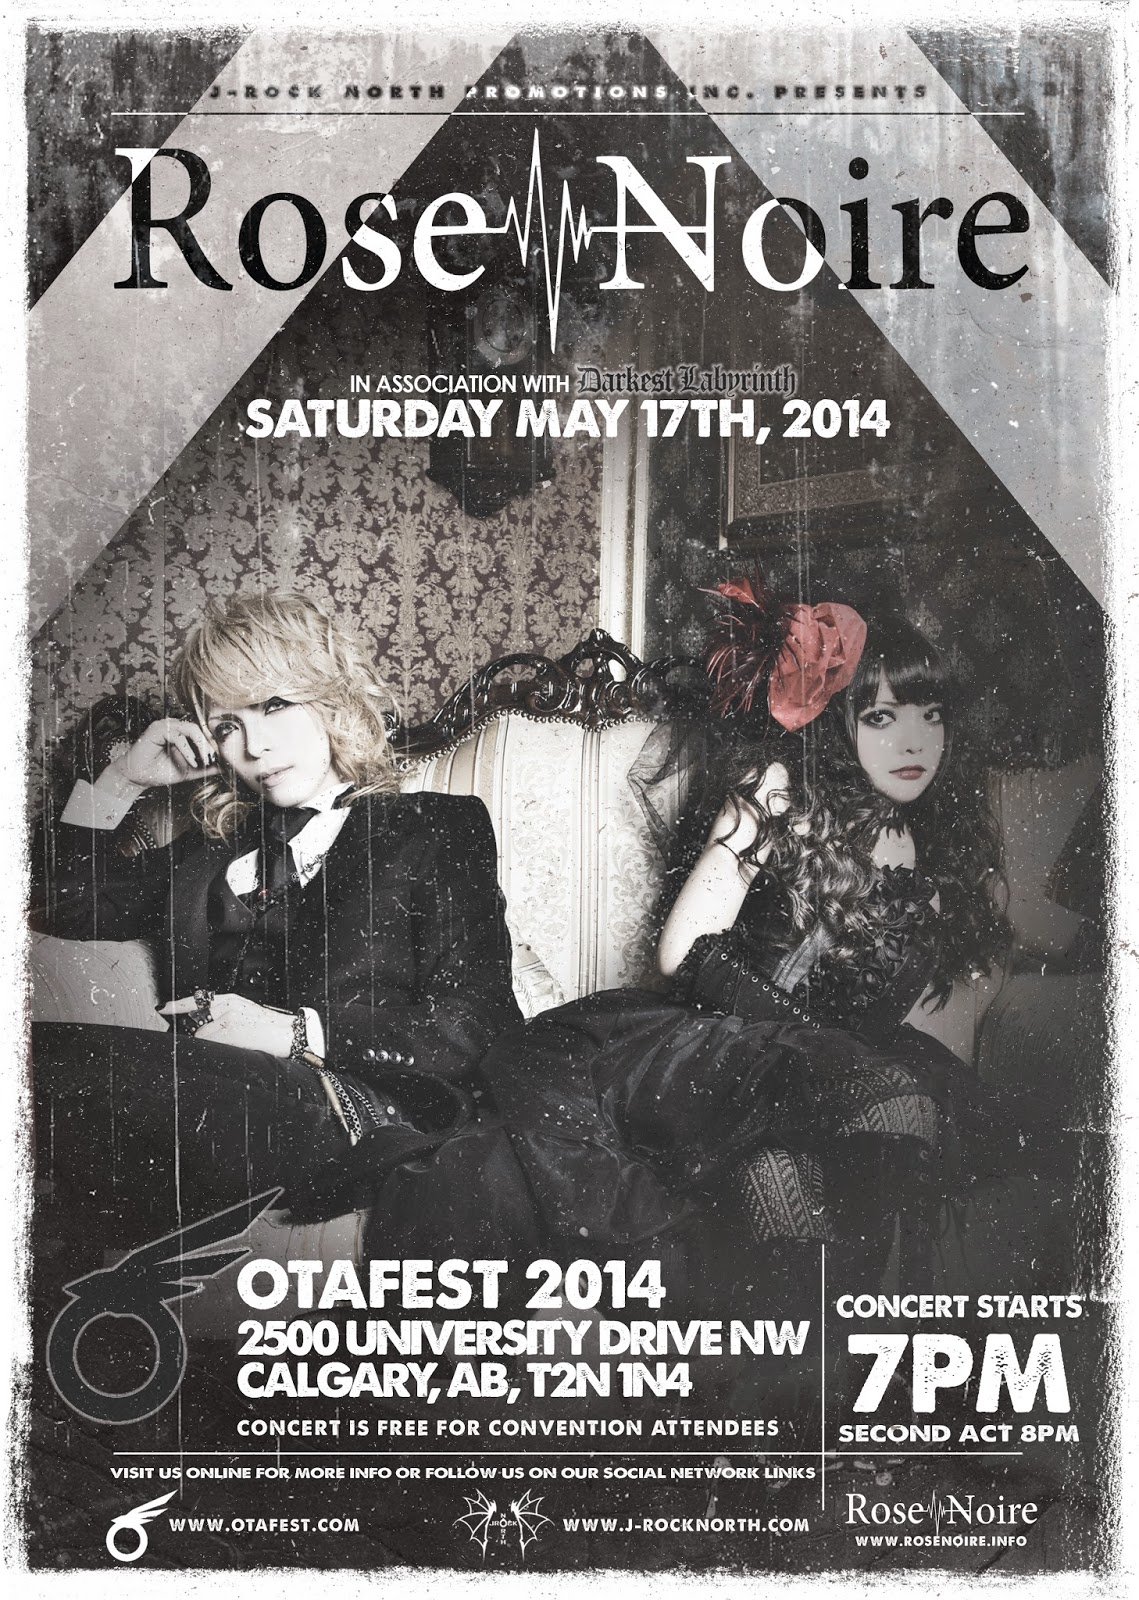 J-rock North Promotions Inc. Presents: Rose Noire At Otafest 2014